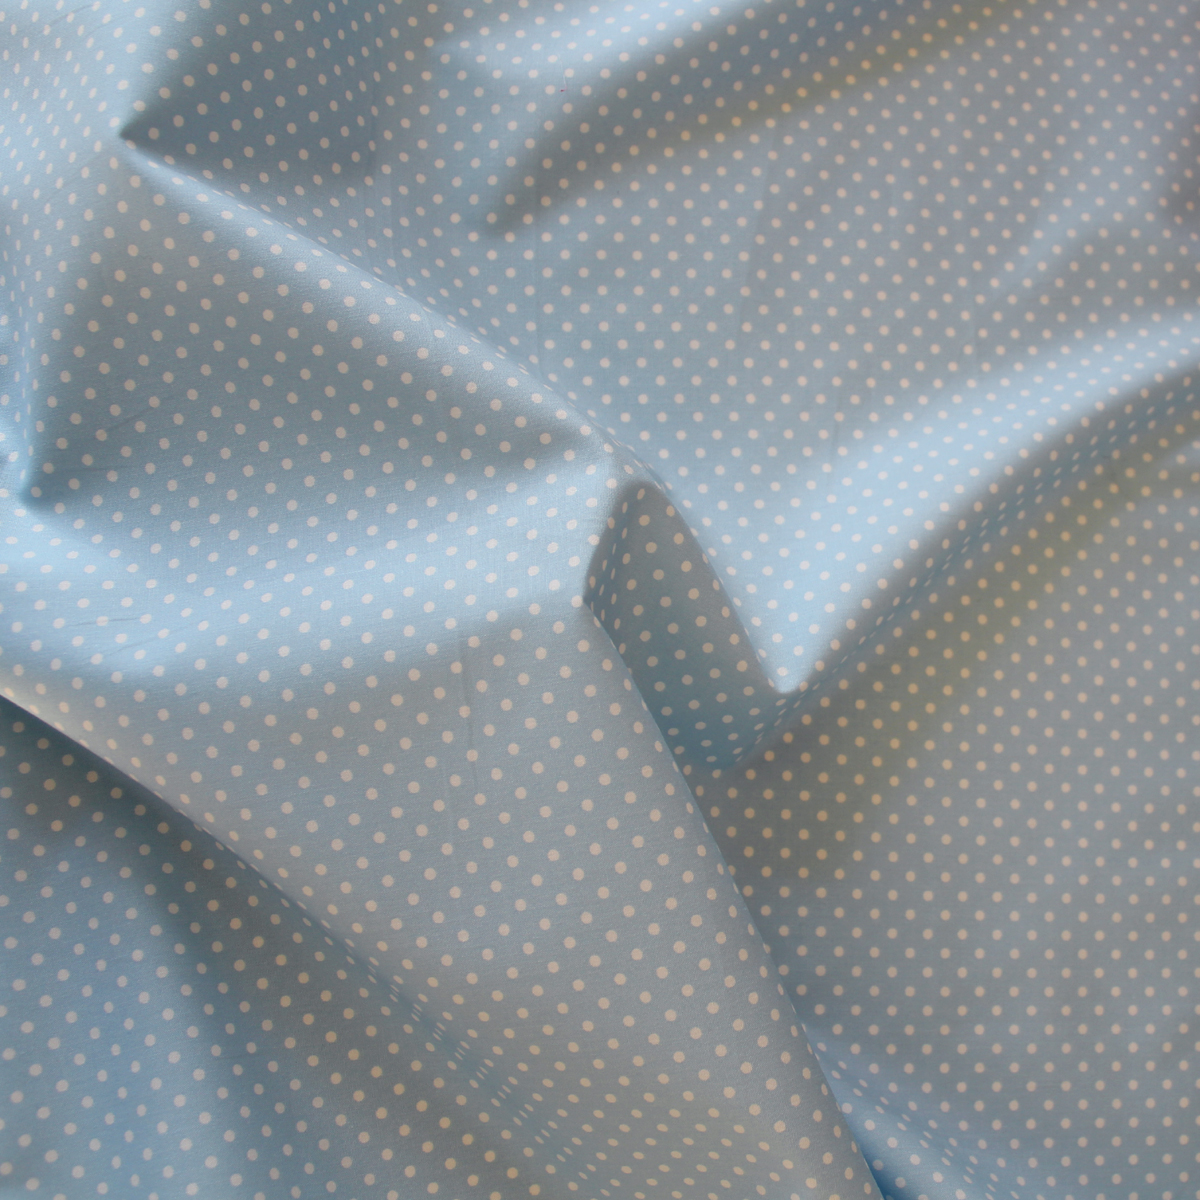 Light blue fabric with white spots - polka dots